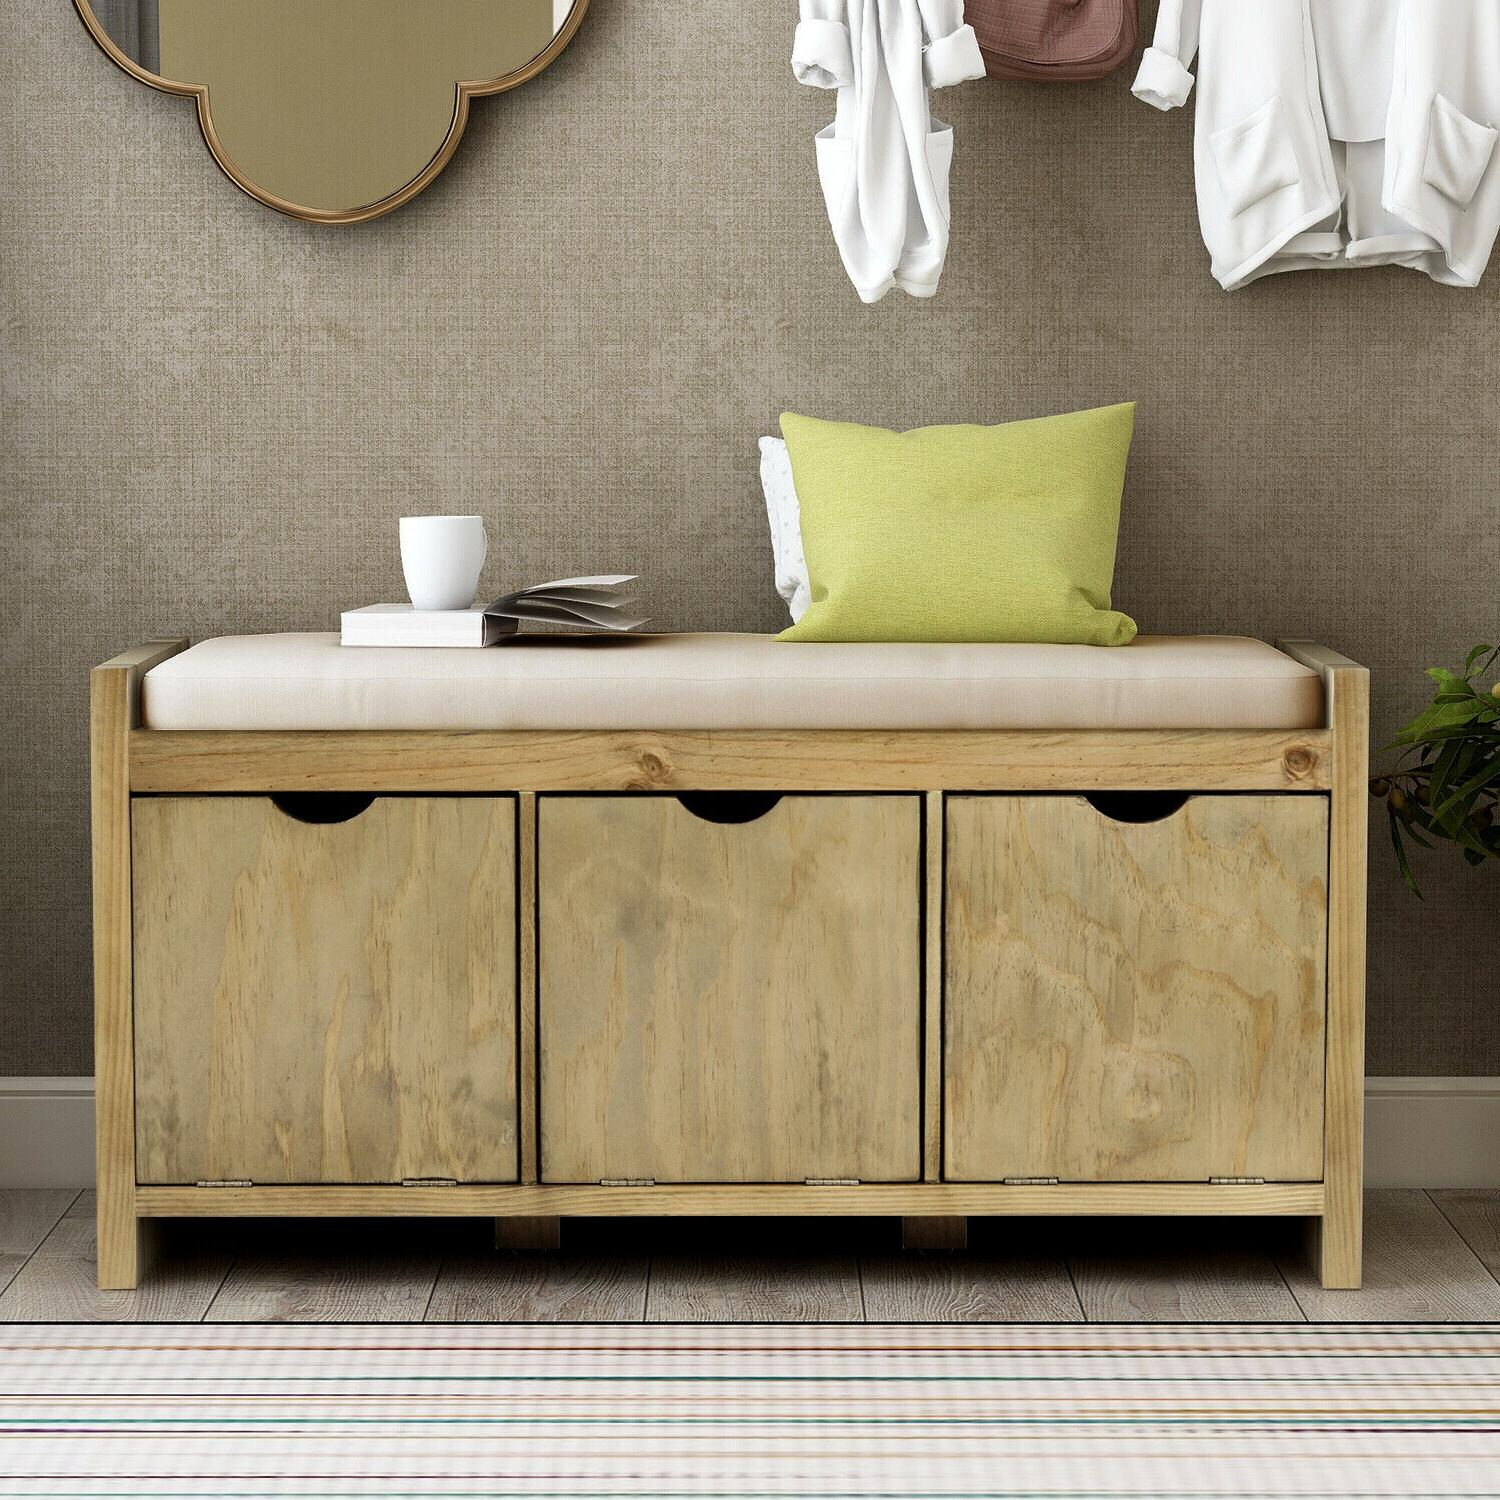 Storage Bench with Cushion&3 Flip Lock Cubbies Living